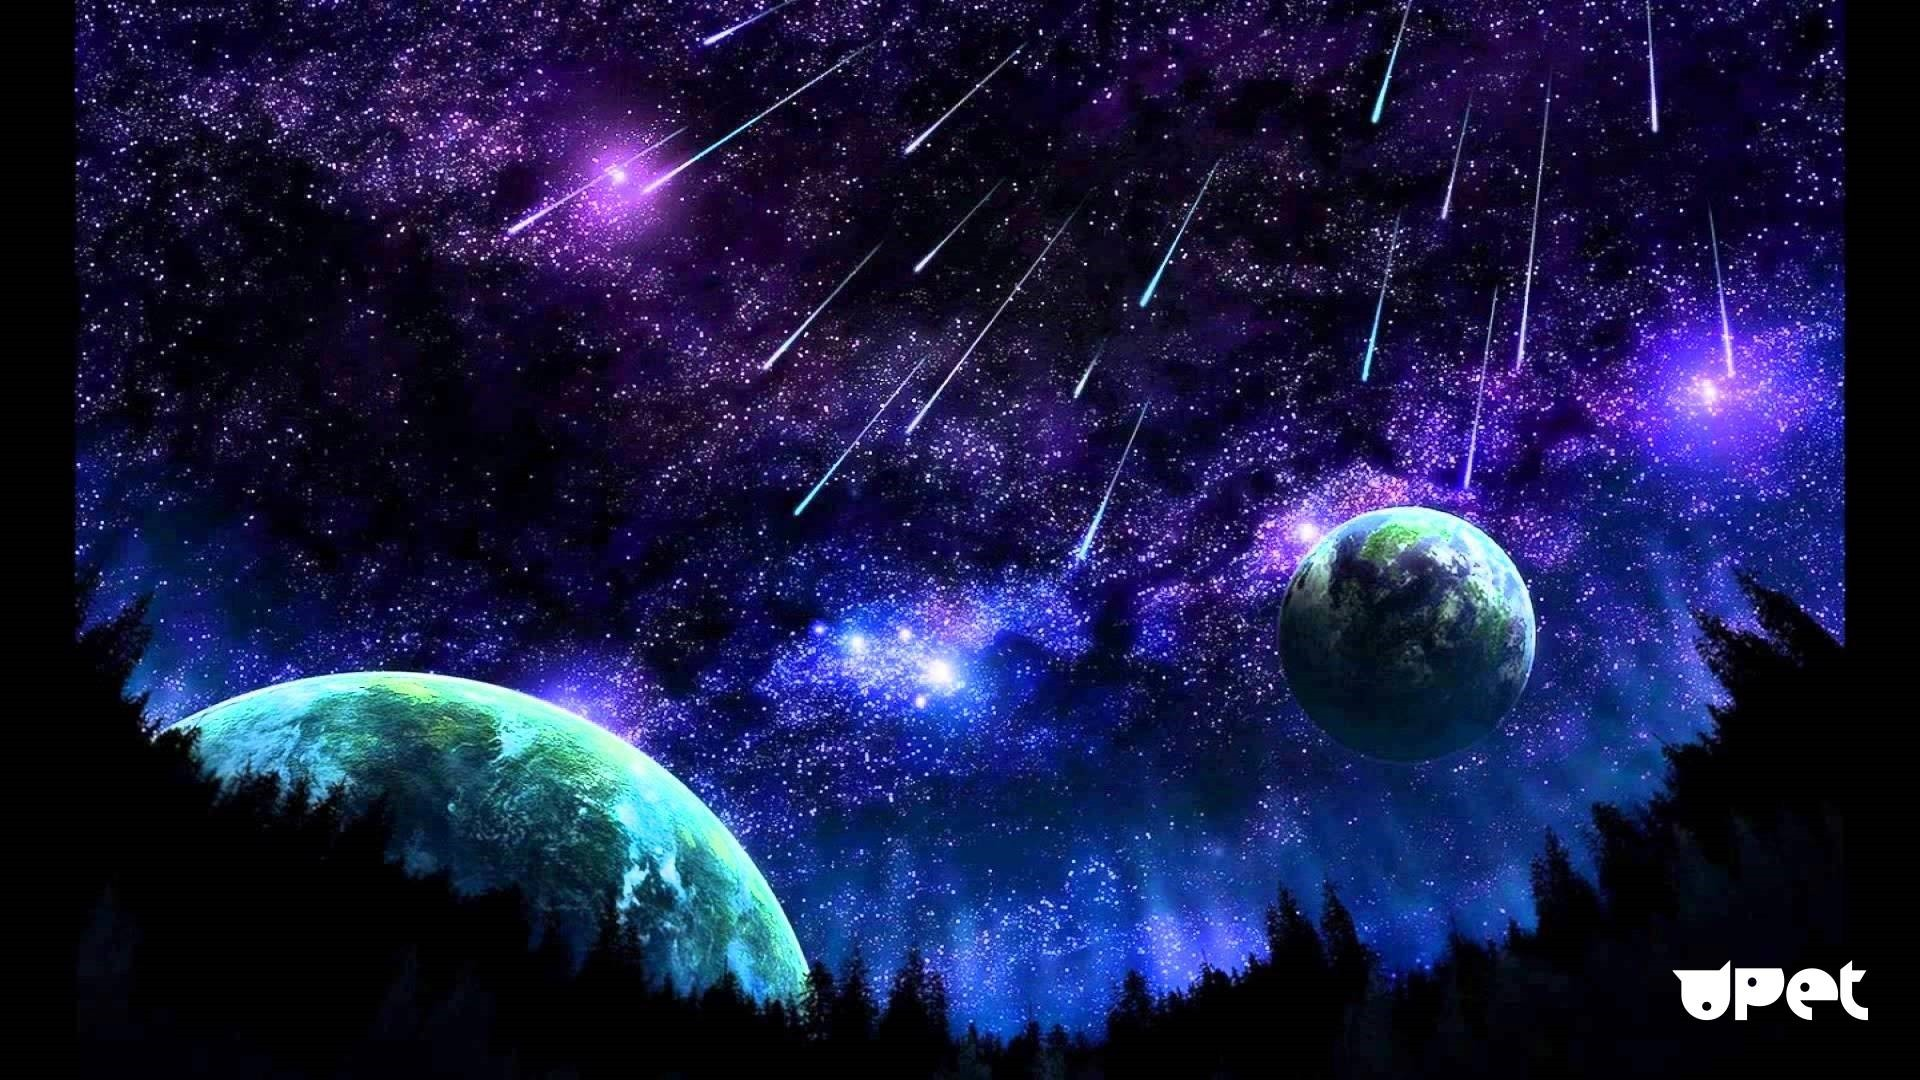 Space Wallpaper for pc